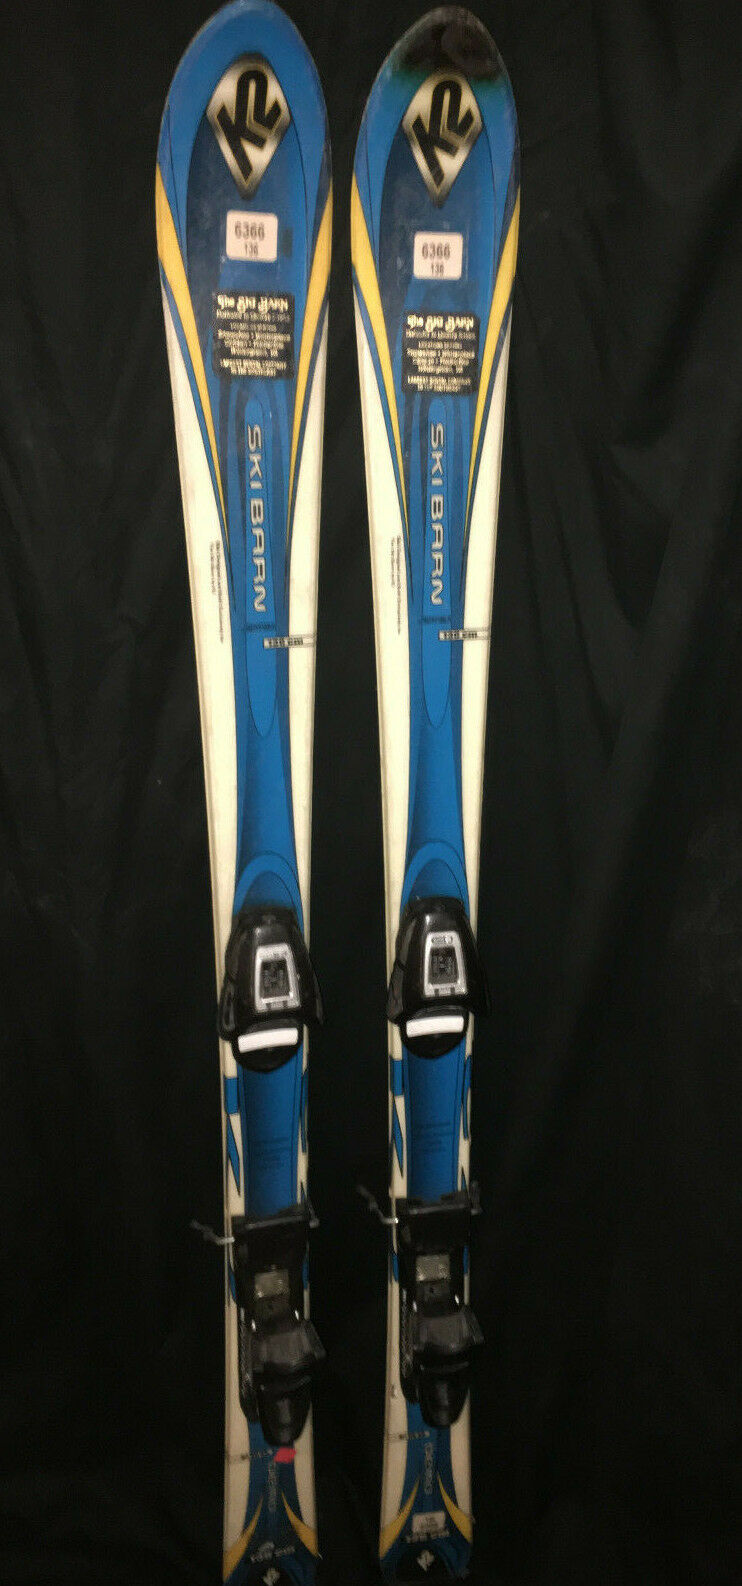 K2  snow  136 Skis w  Salomon c509 Fully Adjustable Demo Bindings downhill volkl  new products novelty items